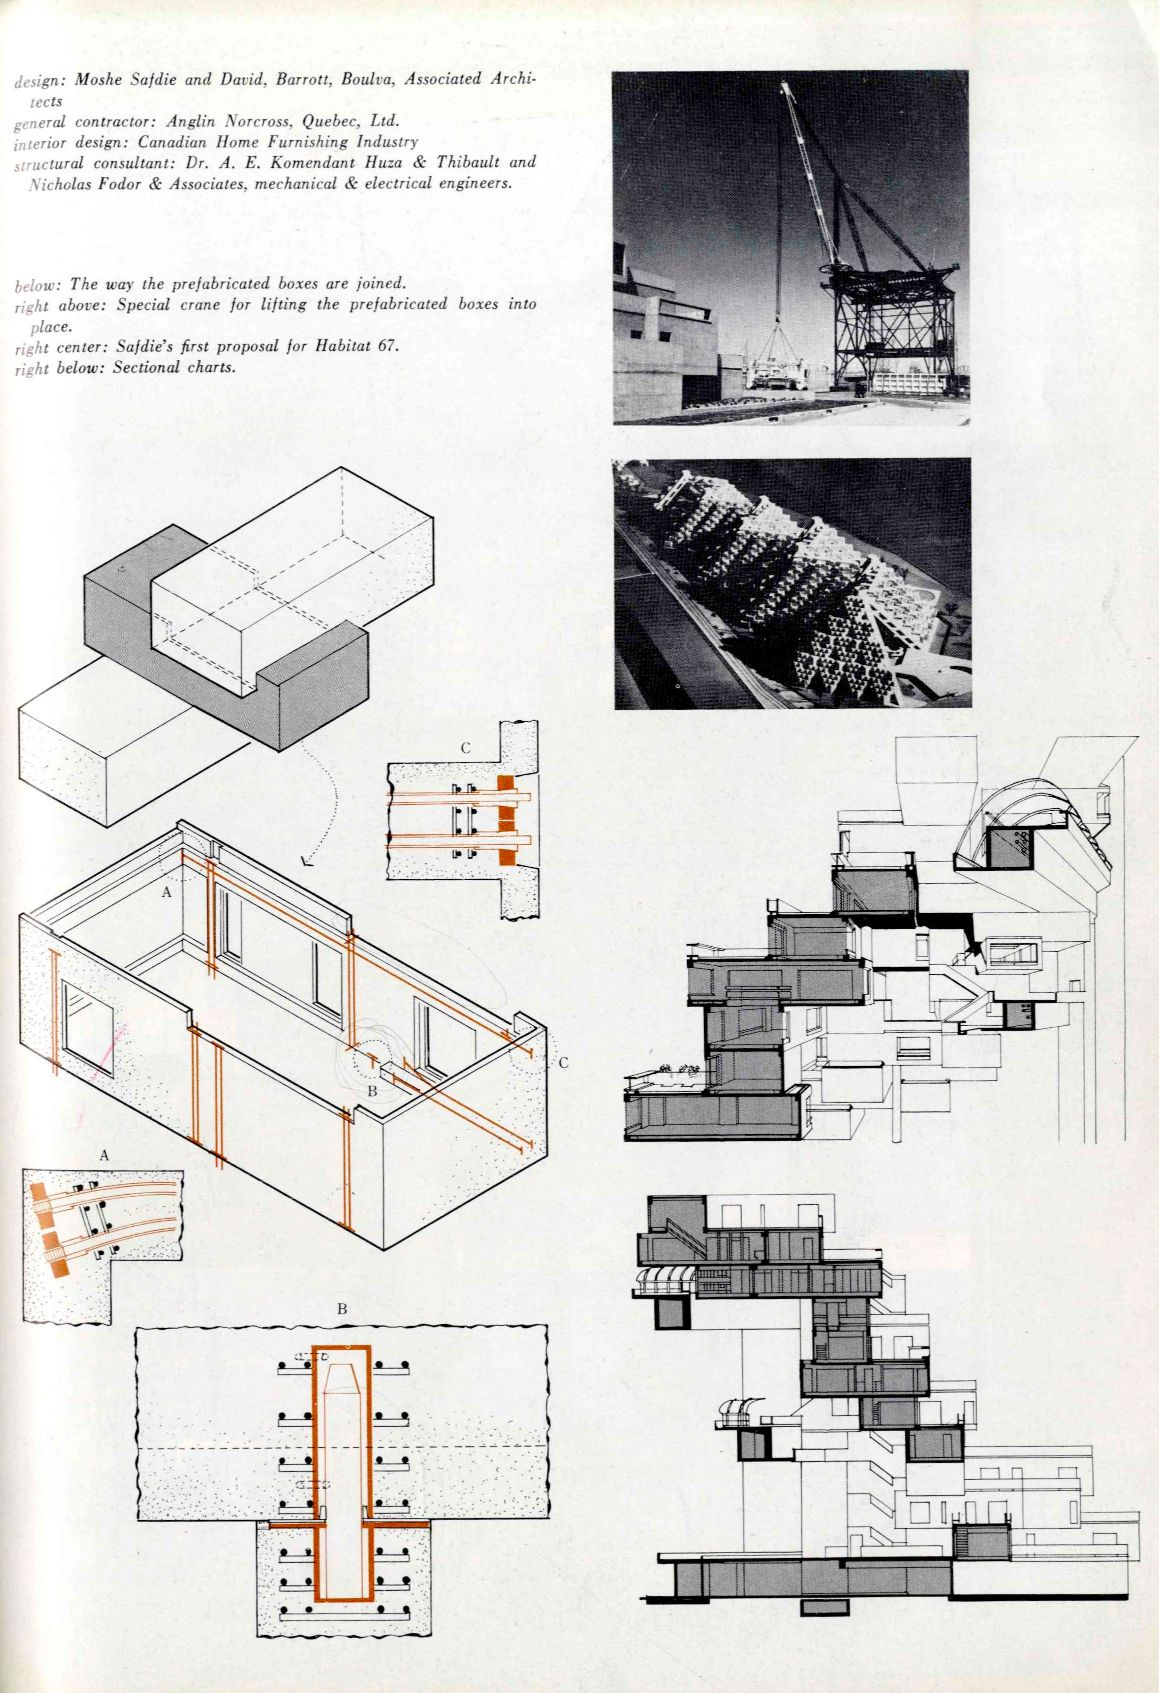 Moshe safdie habitat 67 montreal canada 1967 my inspiration for arch pinterest for Construction habitat